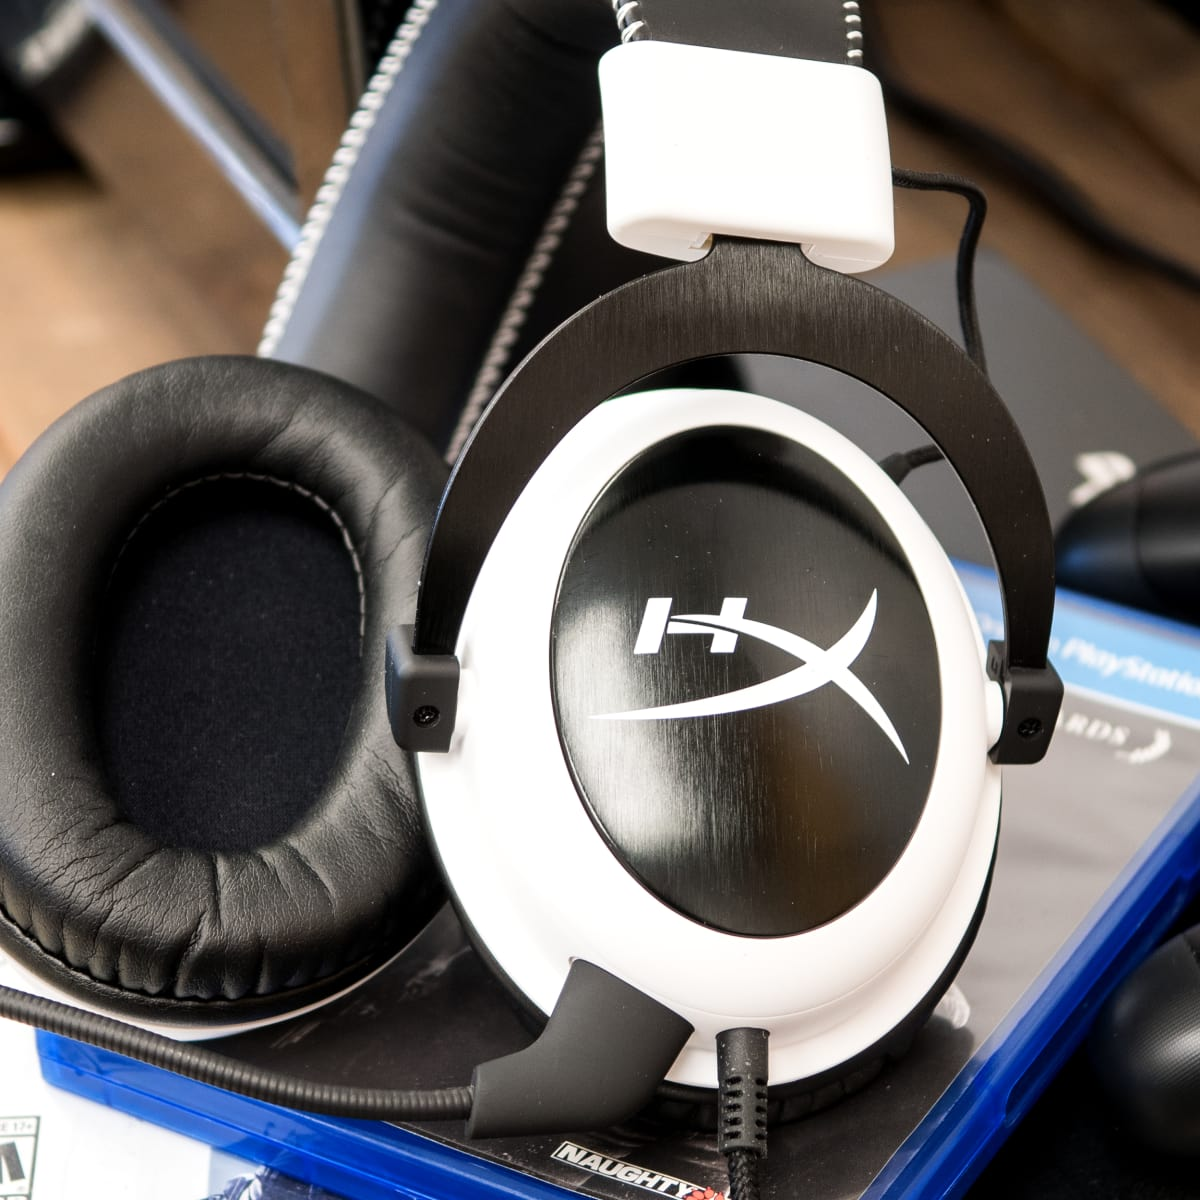 The Best PS4 Headphones of 2019 - Reviewed Televisions 355db5ede6